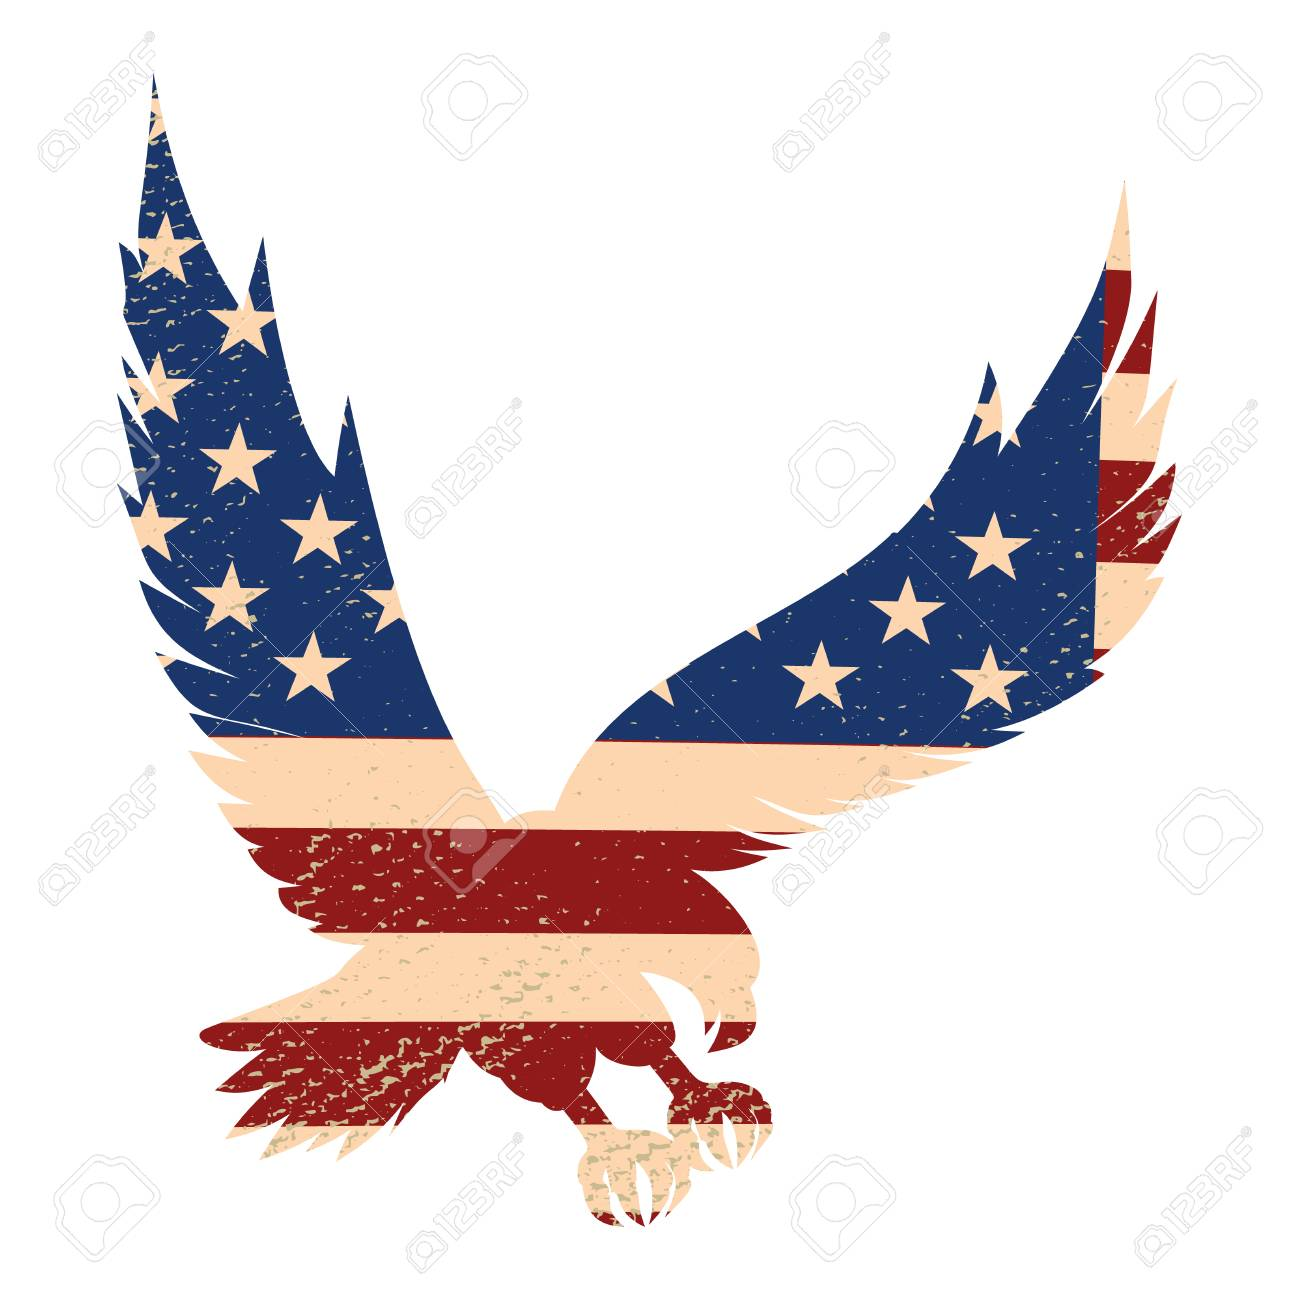 Eagle Silhouette On The Usa Flag Background Design Element For